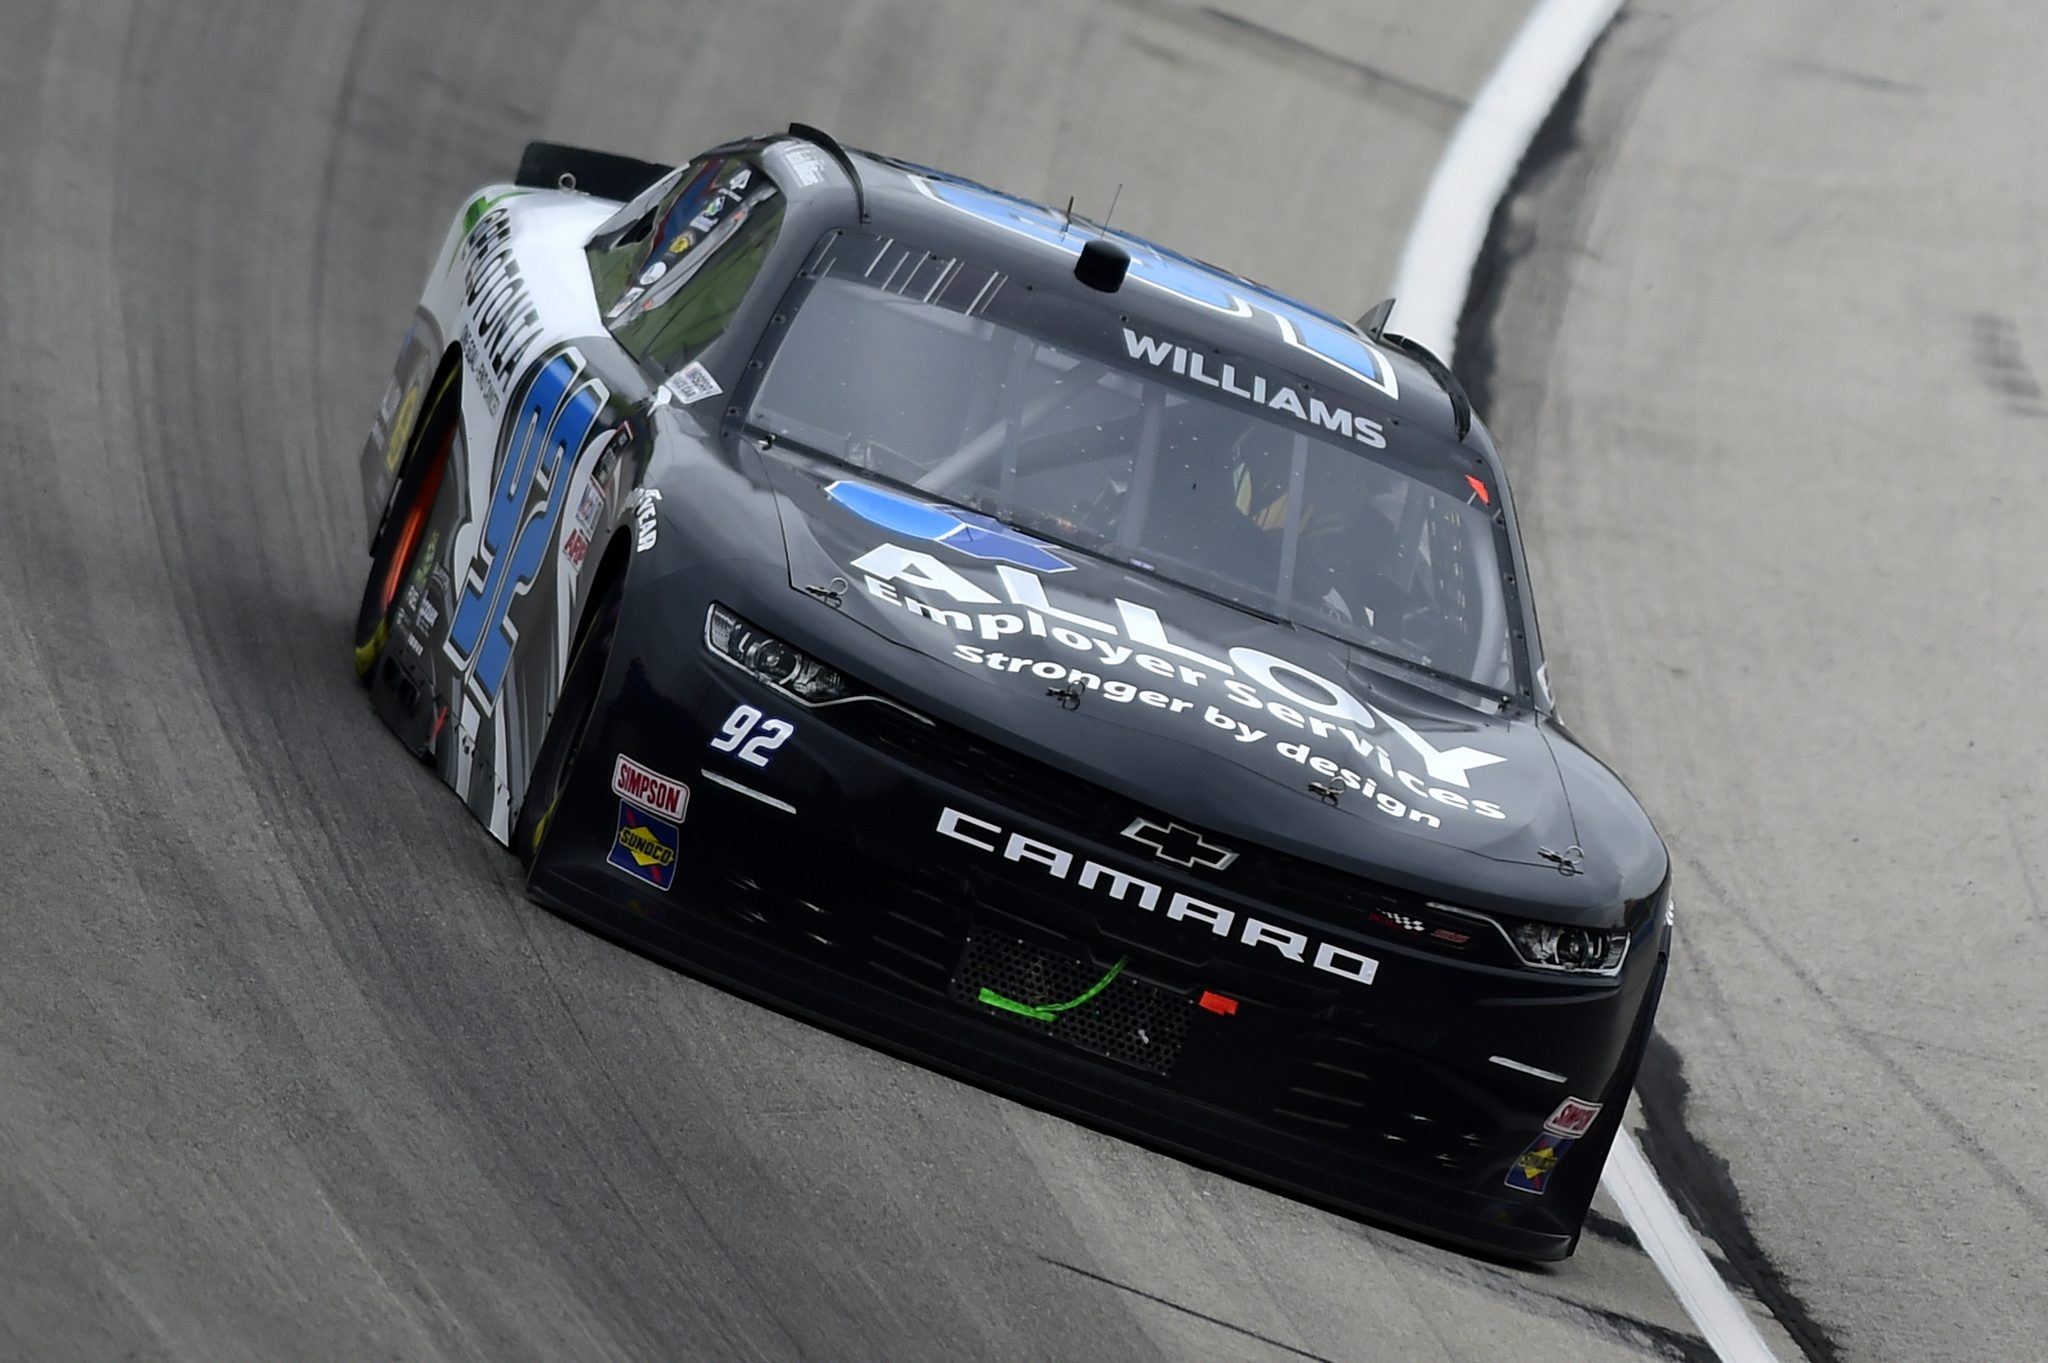 FORT WORTH, TEXAS - OCTOBER 24: Josh Williams, driver of the #92 Chevrolet, drives during the NASCAR Xfinity Series O'Reilly Auto Parts 300 at Texas Motor Speedway on October 24, 2020 in Fort Worth, Texas. (Photo by Jared C. Tilton/Getty Images) | Getty Images